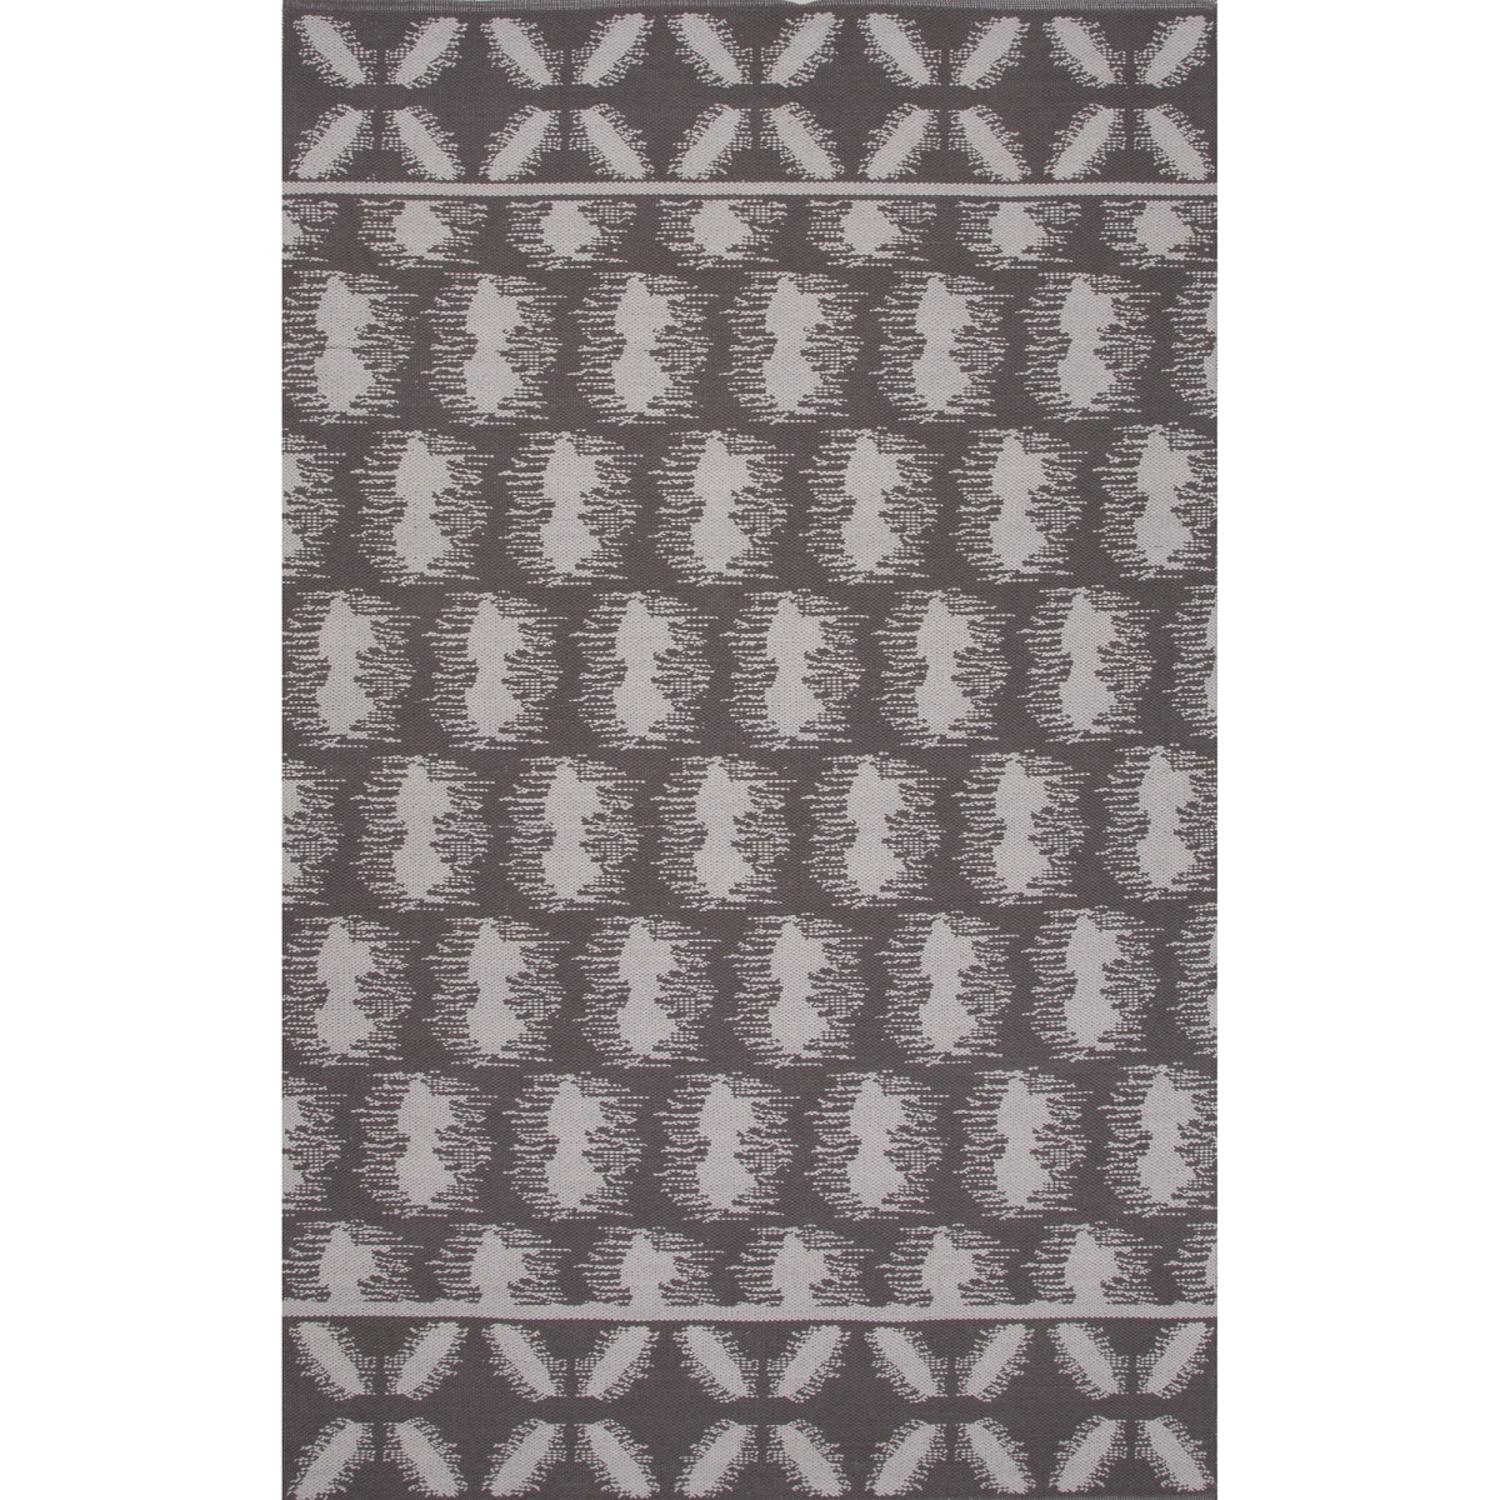 5' x 8' Mink Taupe and Polar White Flat Weave Reversible Cloud Area Throw Rug